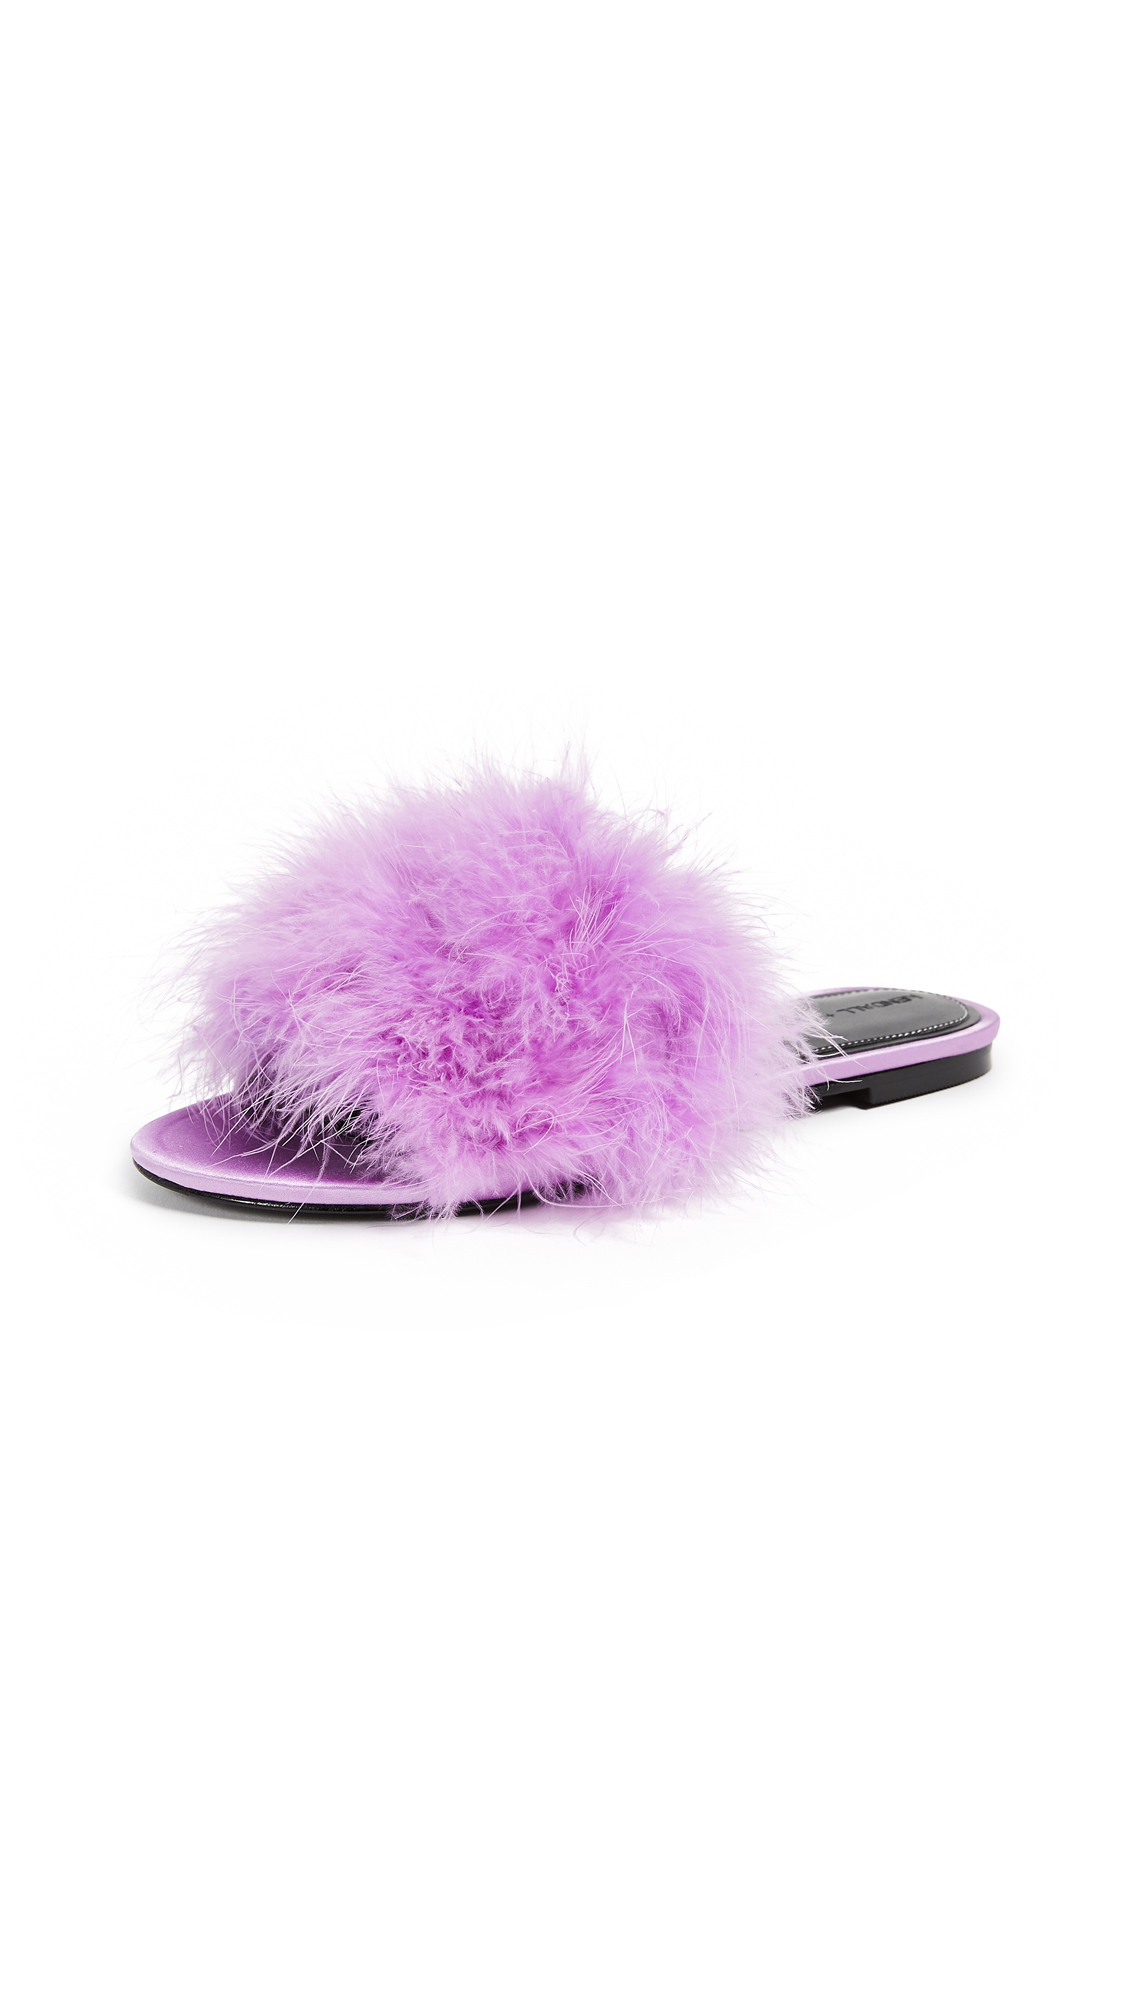 KENDALL + KYLIE Chloe2 Flat Slides - Light Purple